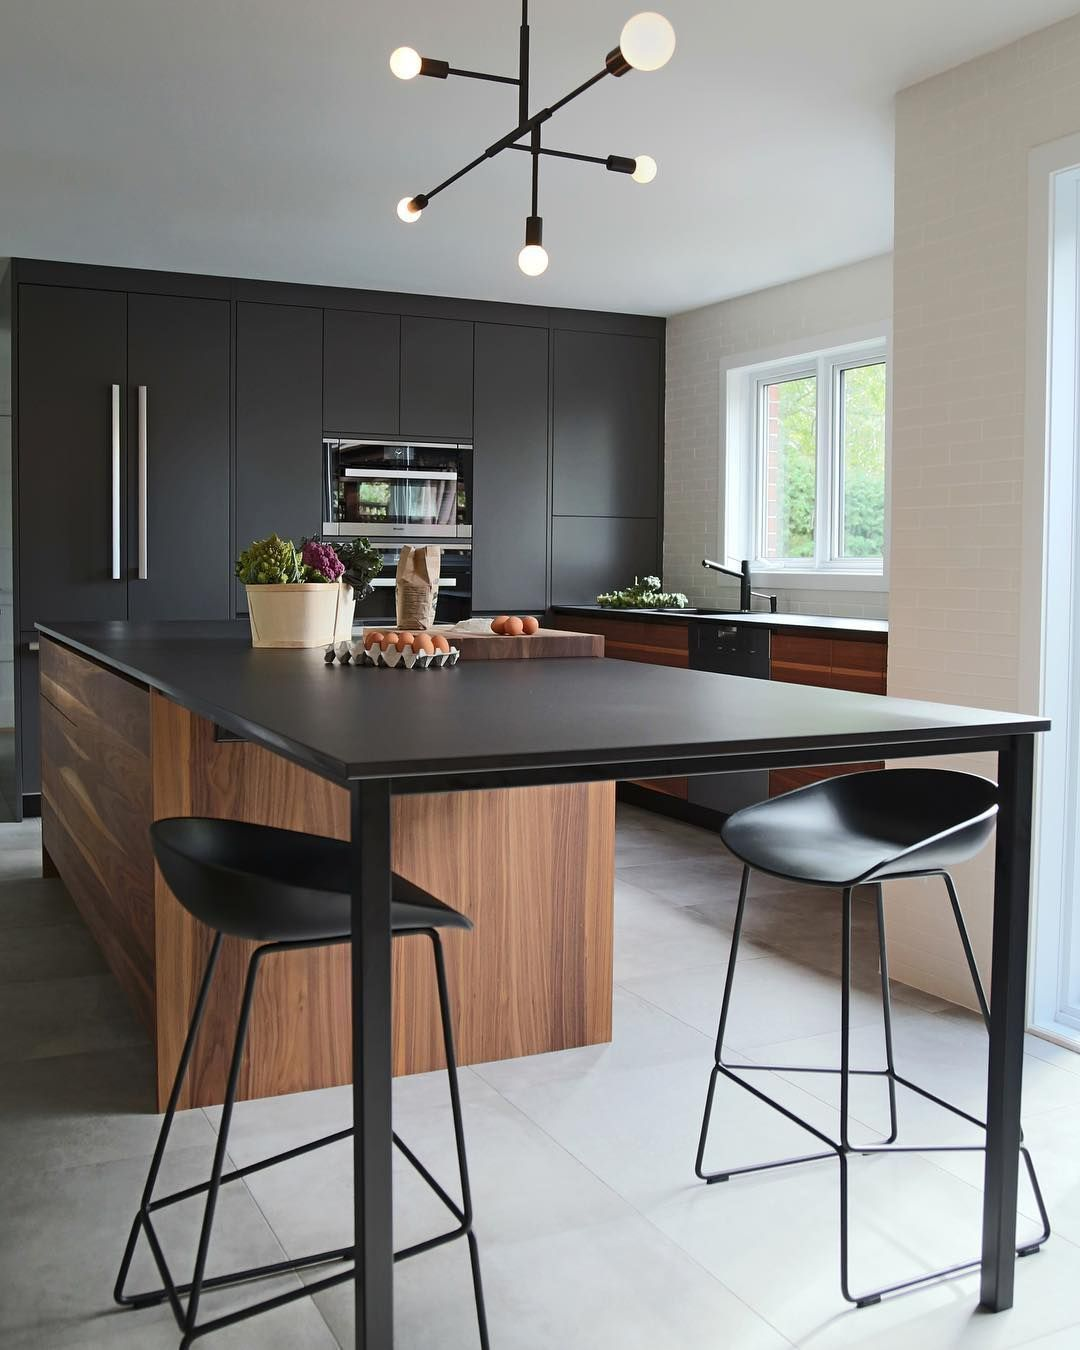 Pin By Virve Berg On Keittio Kitchen Projects Design Contemporary Kitchen Modern Kitchen Lighting